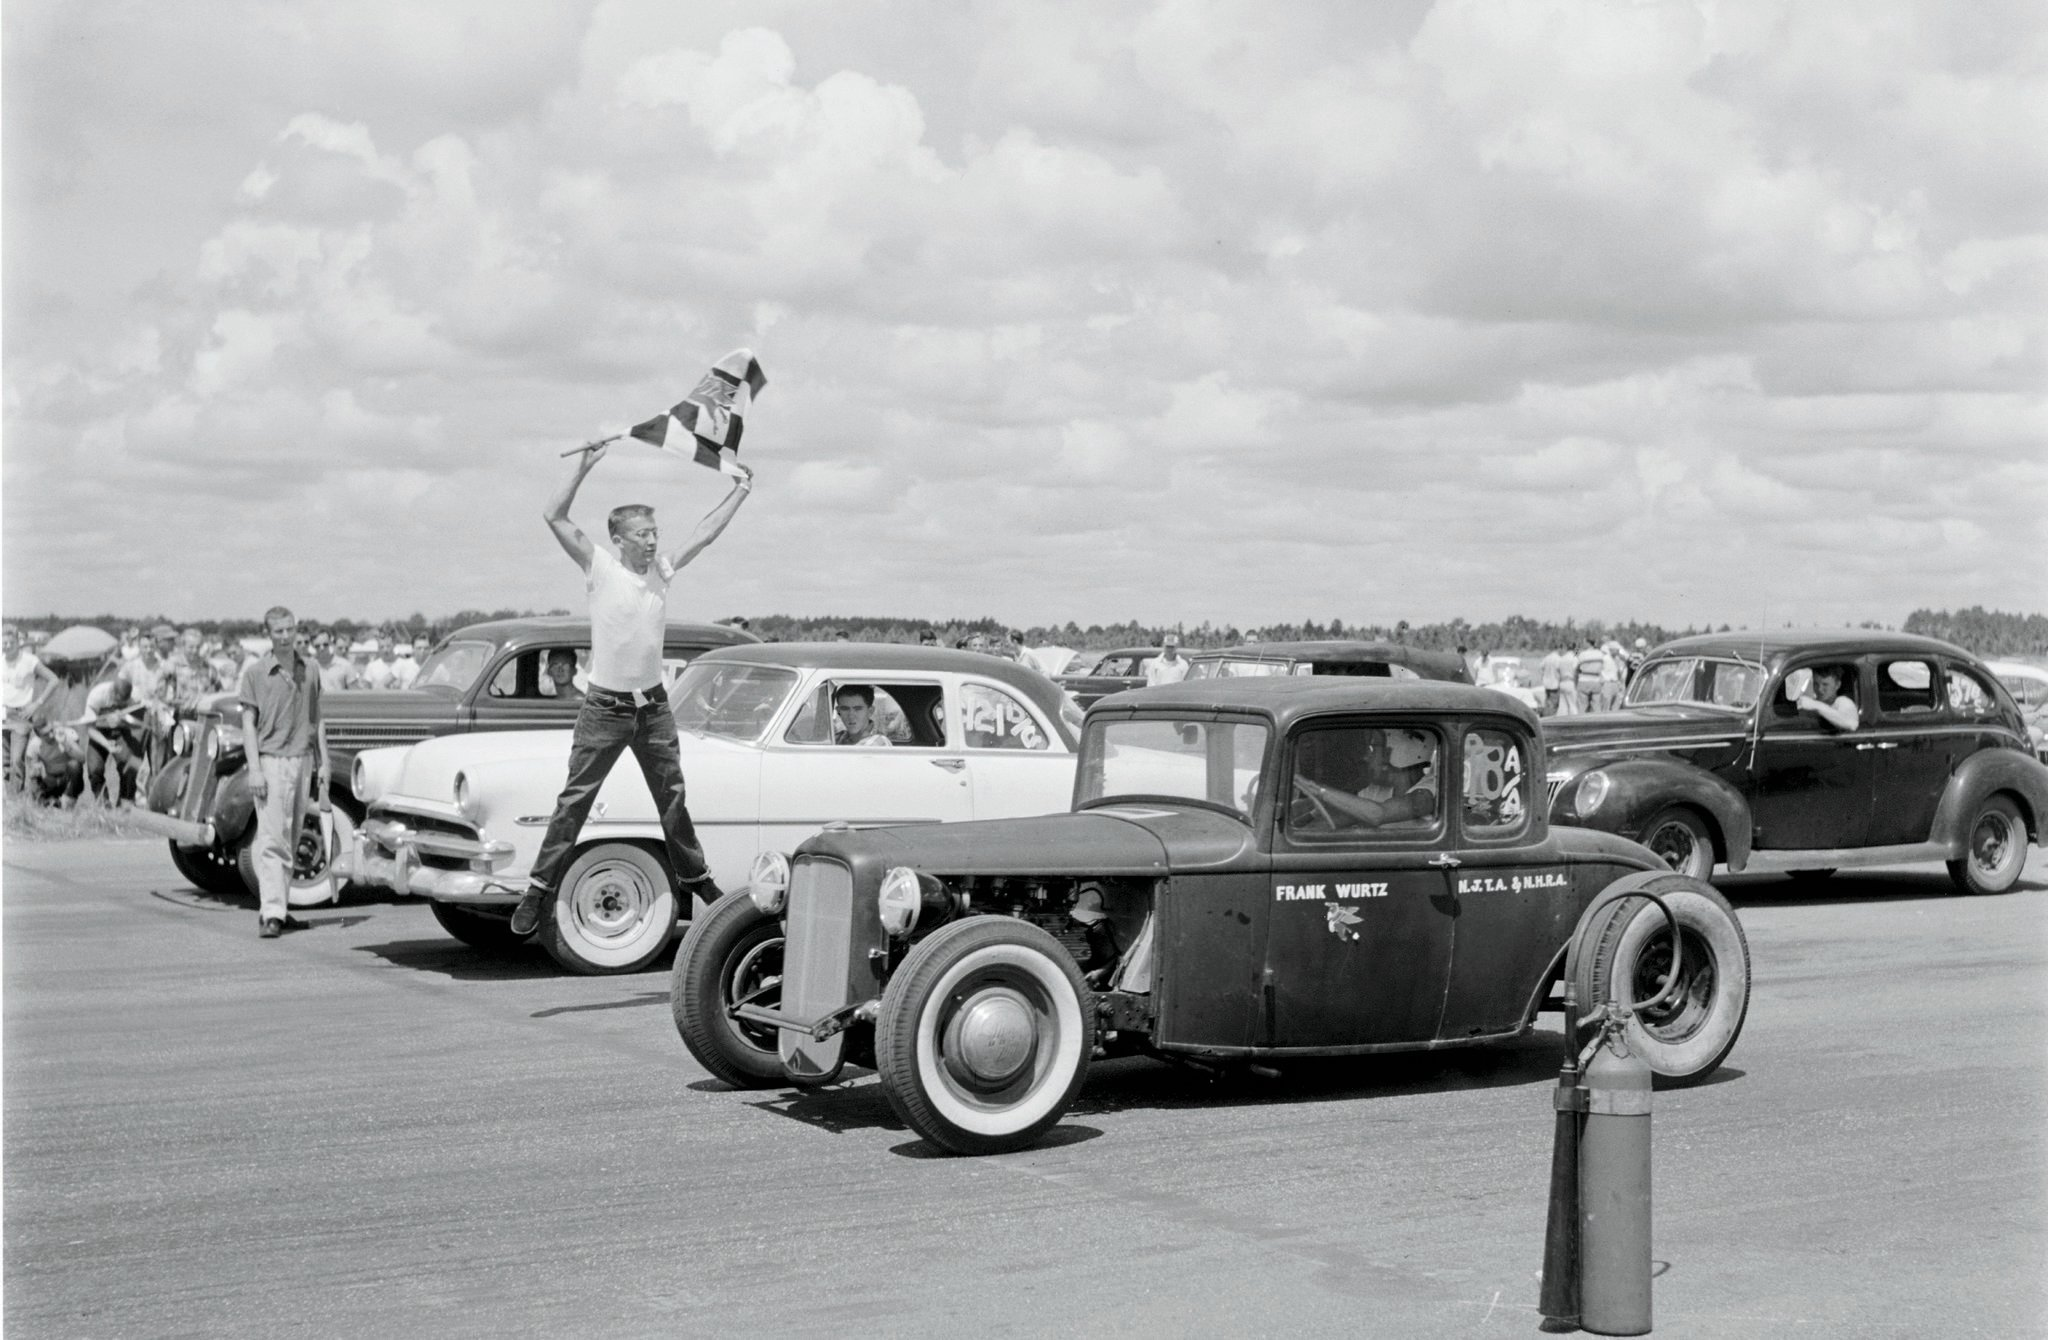 Our esteemed archivist, Thomas Voehringer, provided the research for our Flagman shot. Says Thomas: NHRA Drag Safari 1955, Lake City, Florida. The is the infancy of organized drag racing, bolstered by the NHRA's cross-country safety tour. In this shot Frank Wurtz, NHRA's New Jersey regional advisor, gets the flag for a solo run in his Merc-powered Deuce. A second flagman can be seen standing between the '53 Ford Gasser and the '35 Dodge staged in the background ('39 Ford four-door, at back right). Wurtz took First in A/Altered. He would eventually face, and succumb to, a young Don Garlits driving his flathead Merc rail job during the semifinals for Top Eliminator.